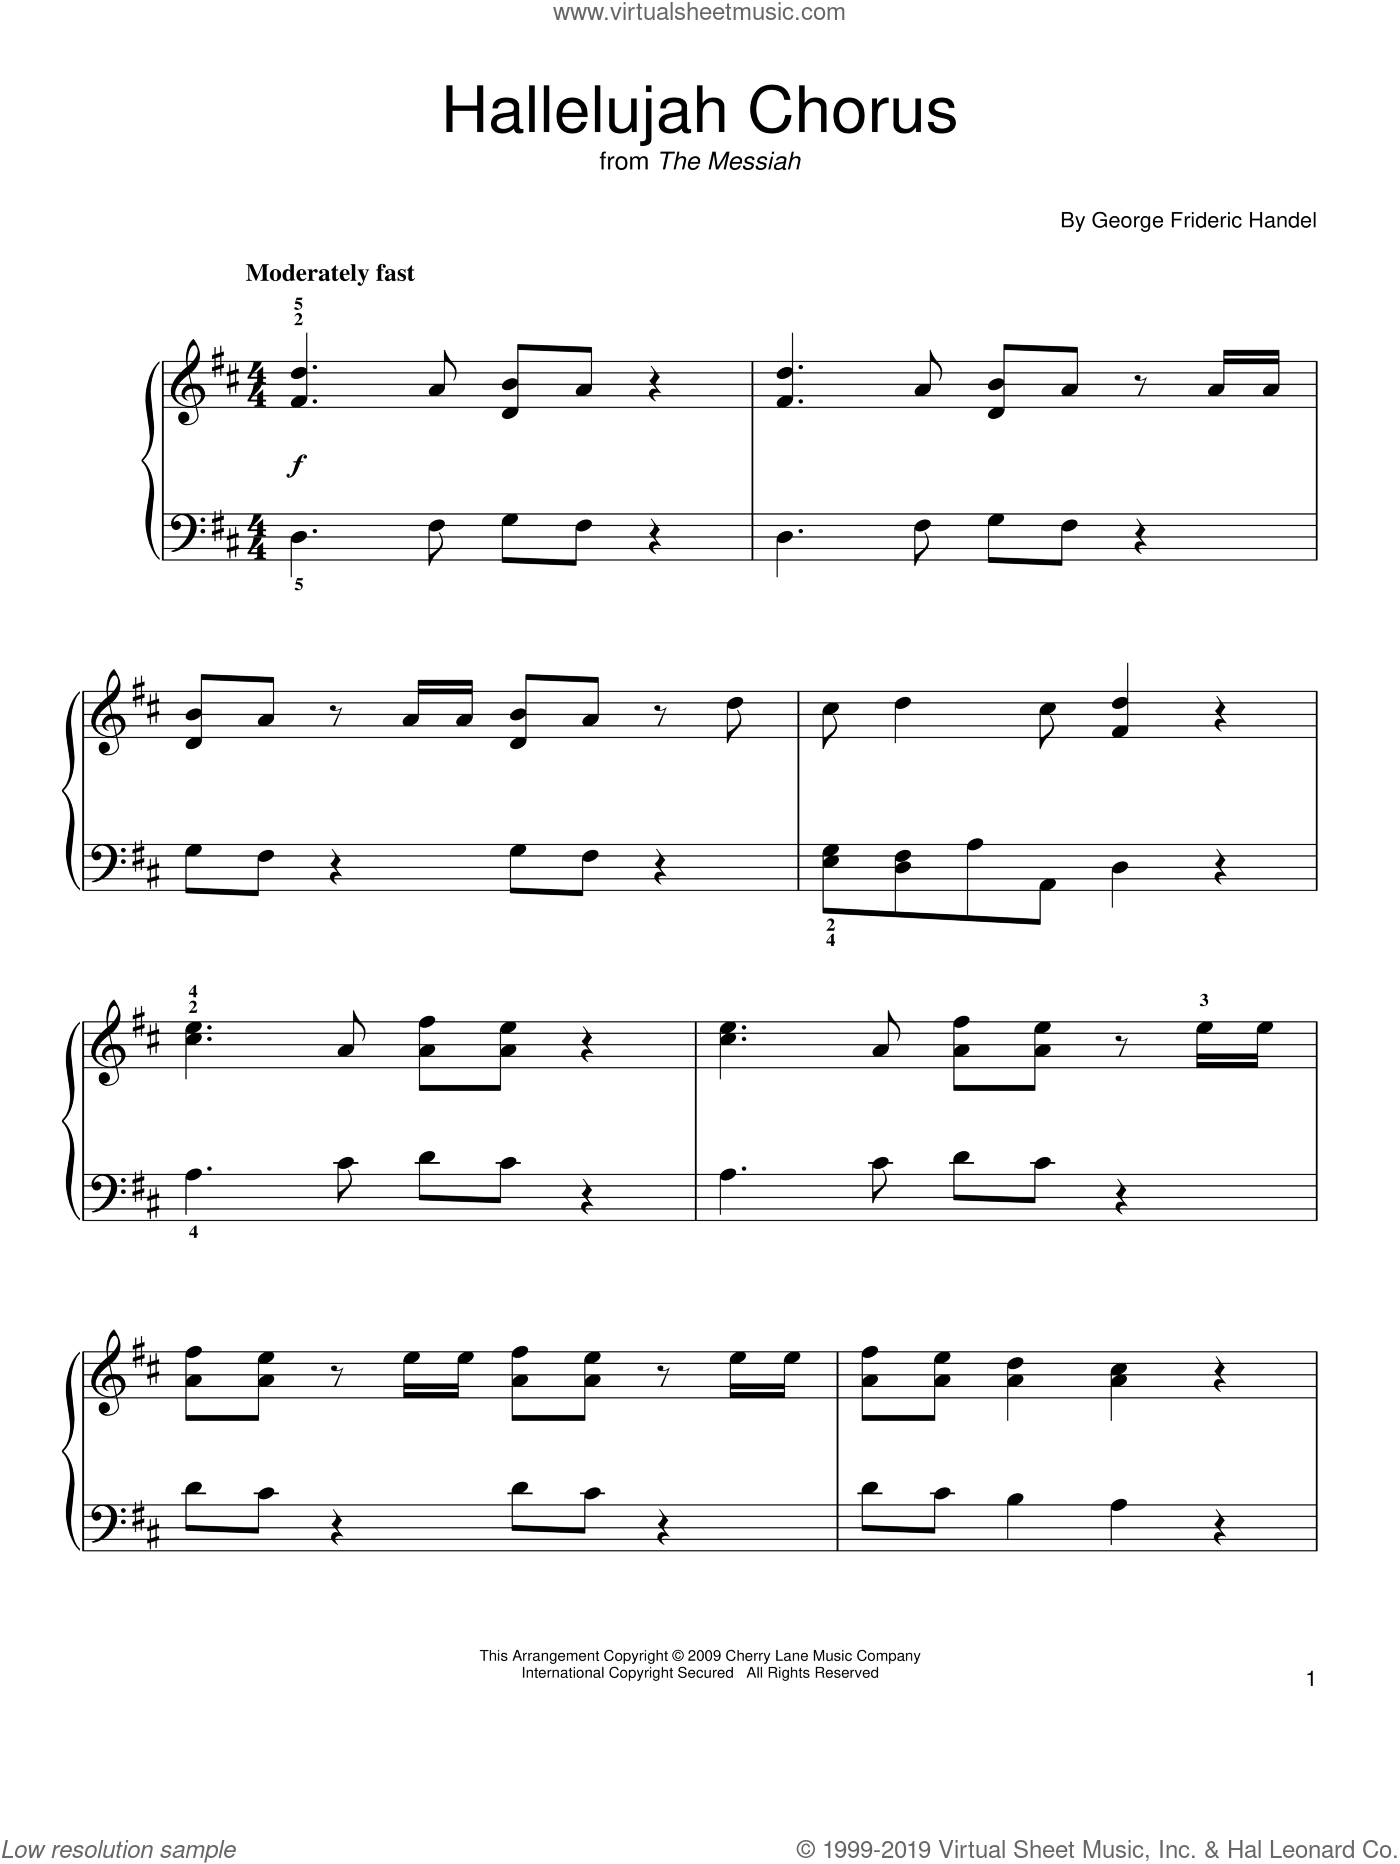 Hallelujah Chorus sheet music for piano solo by George Frideric Handel, classical score, easy skill level